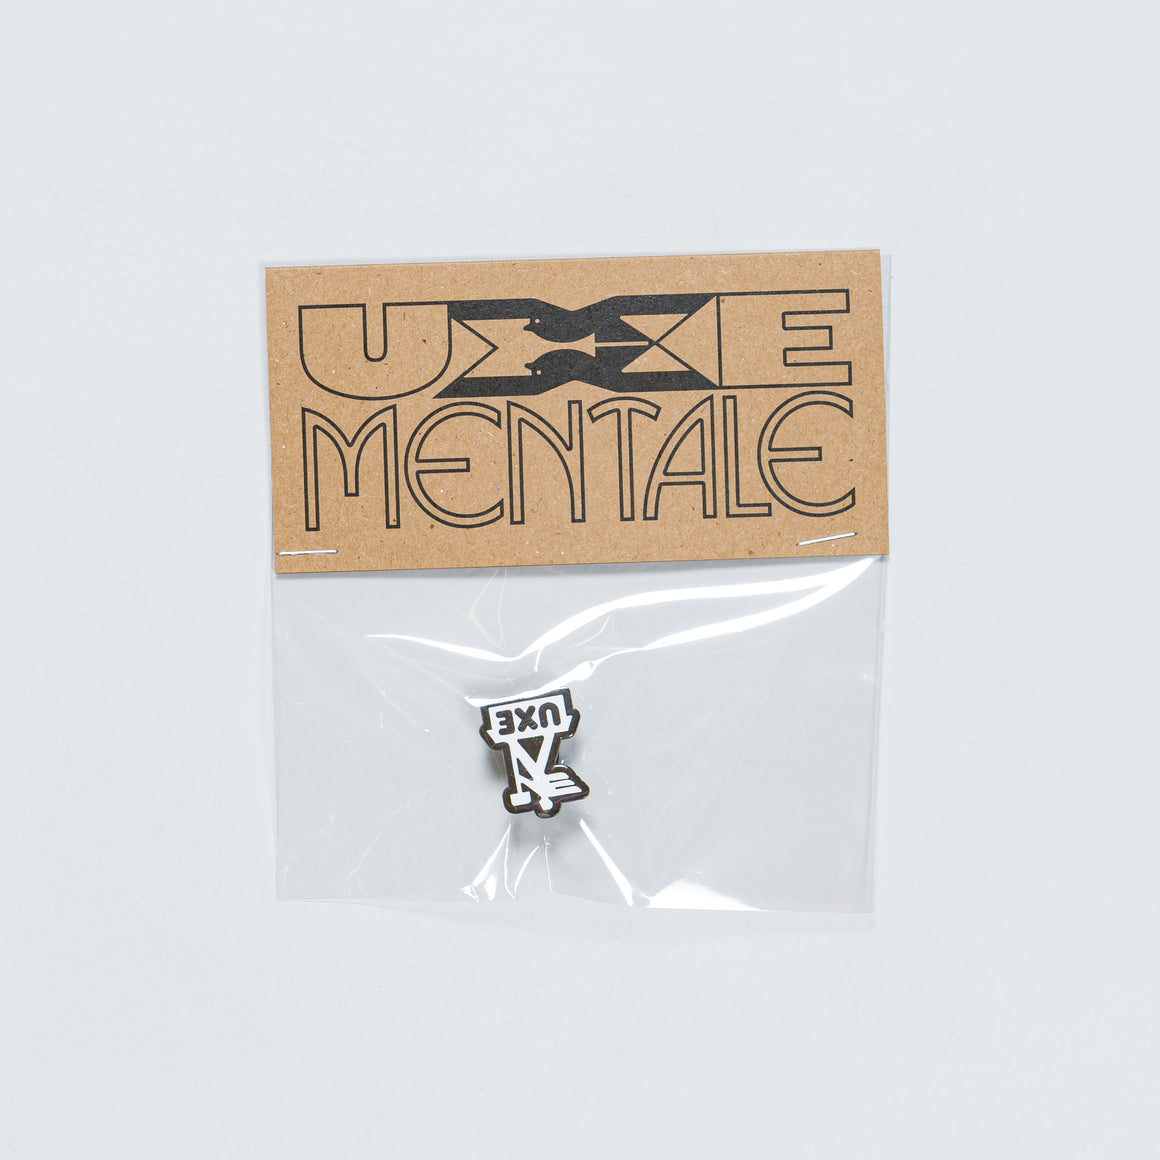 Uxe Mentale - Postman Enamel Pin - Black/White - Up There